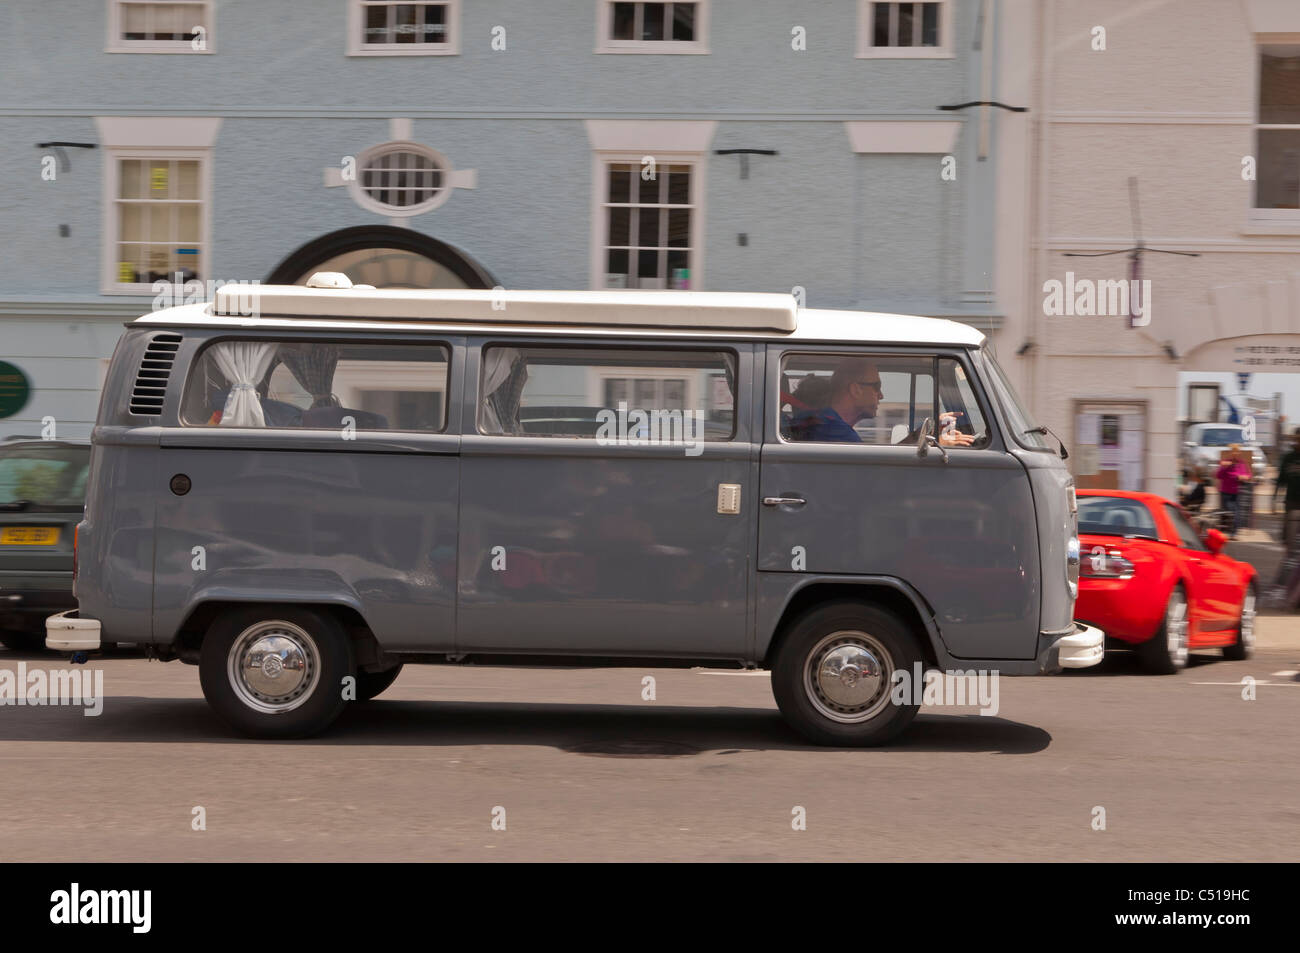 An old VW campervan driving through a UK street showing motion blur - Stock Image